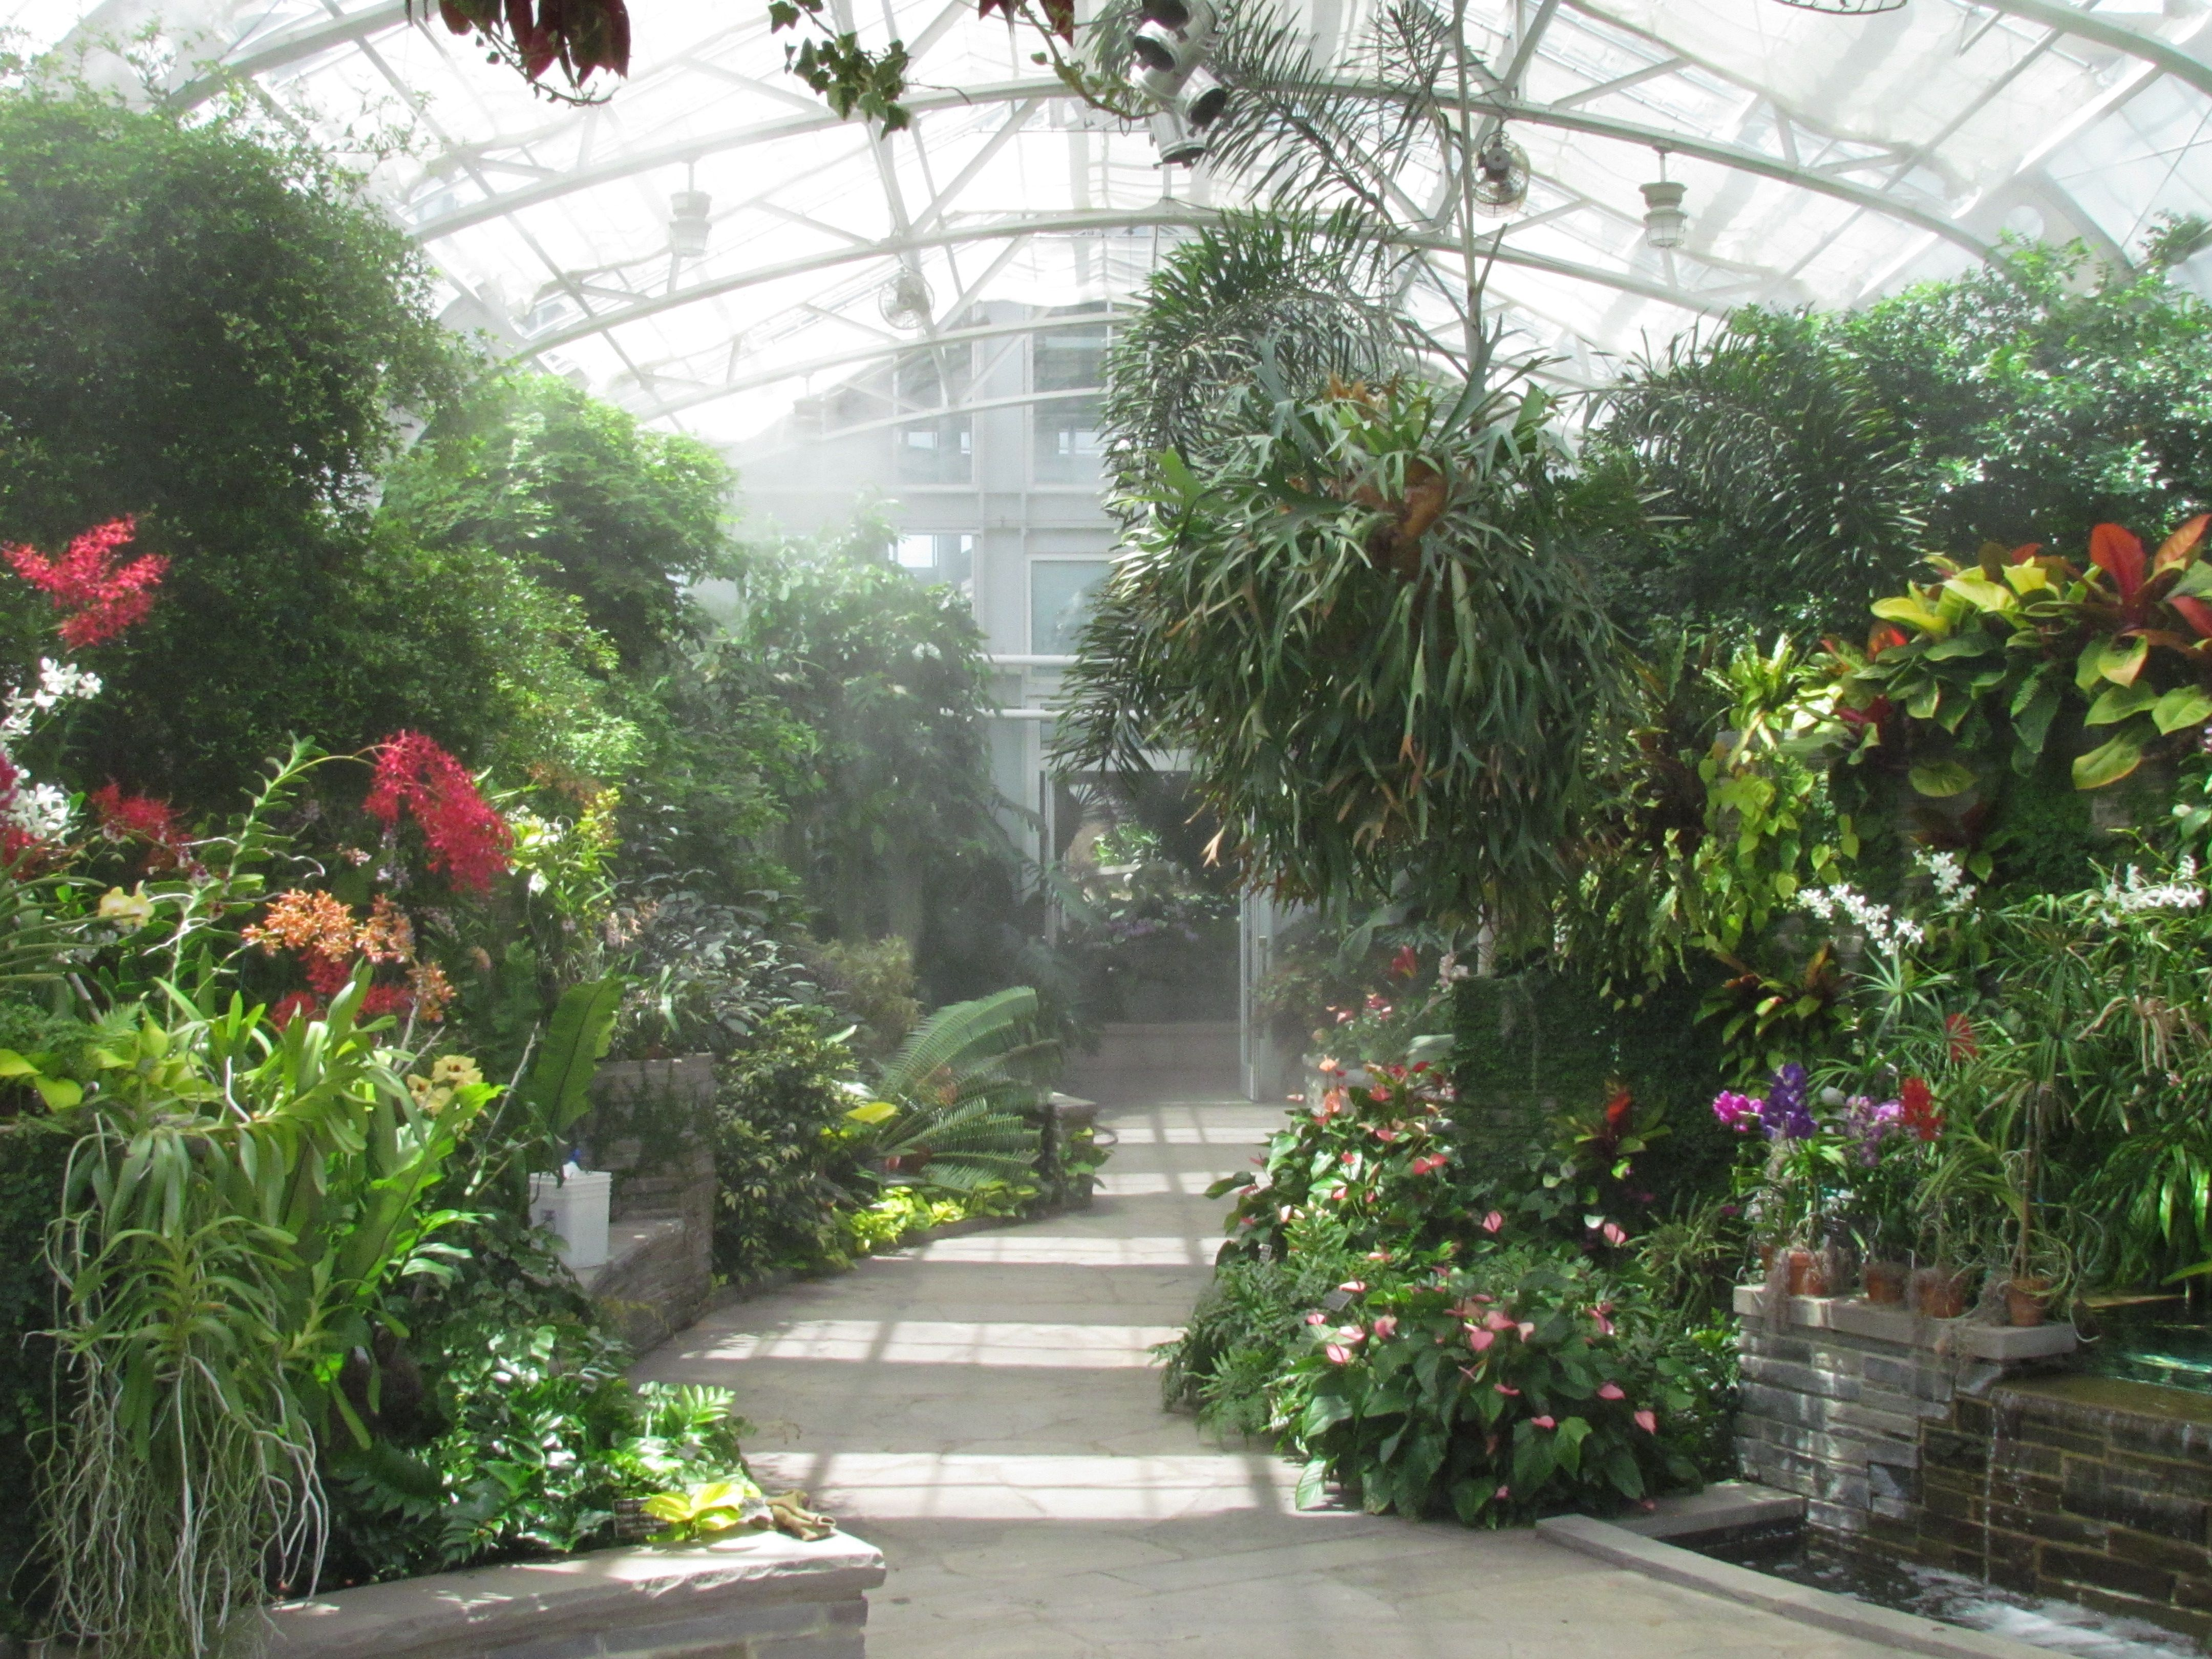 Inside the Conservatory at the Lewis Ginter Botanical Garden ...